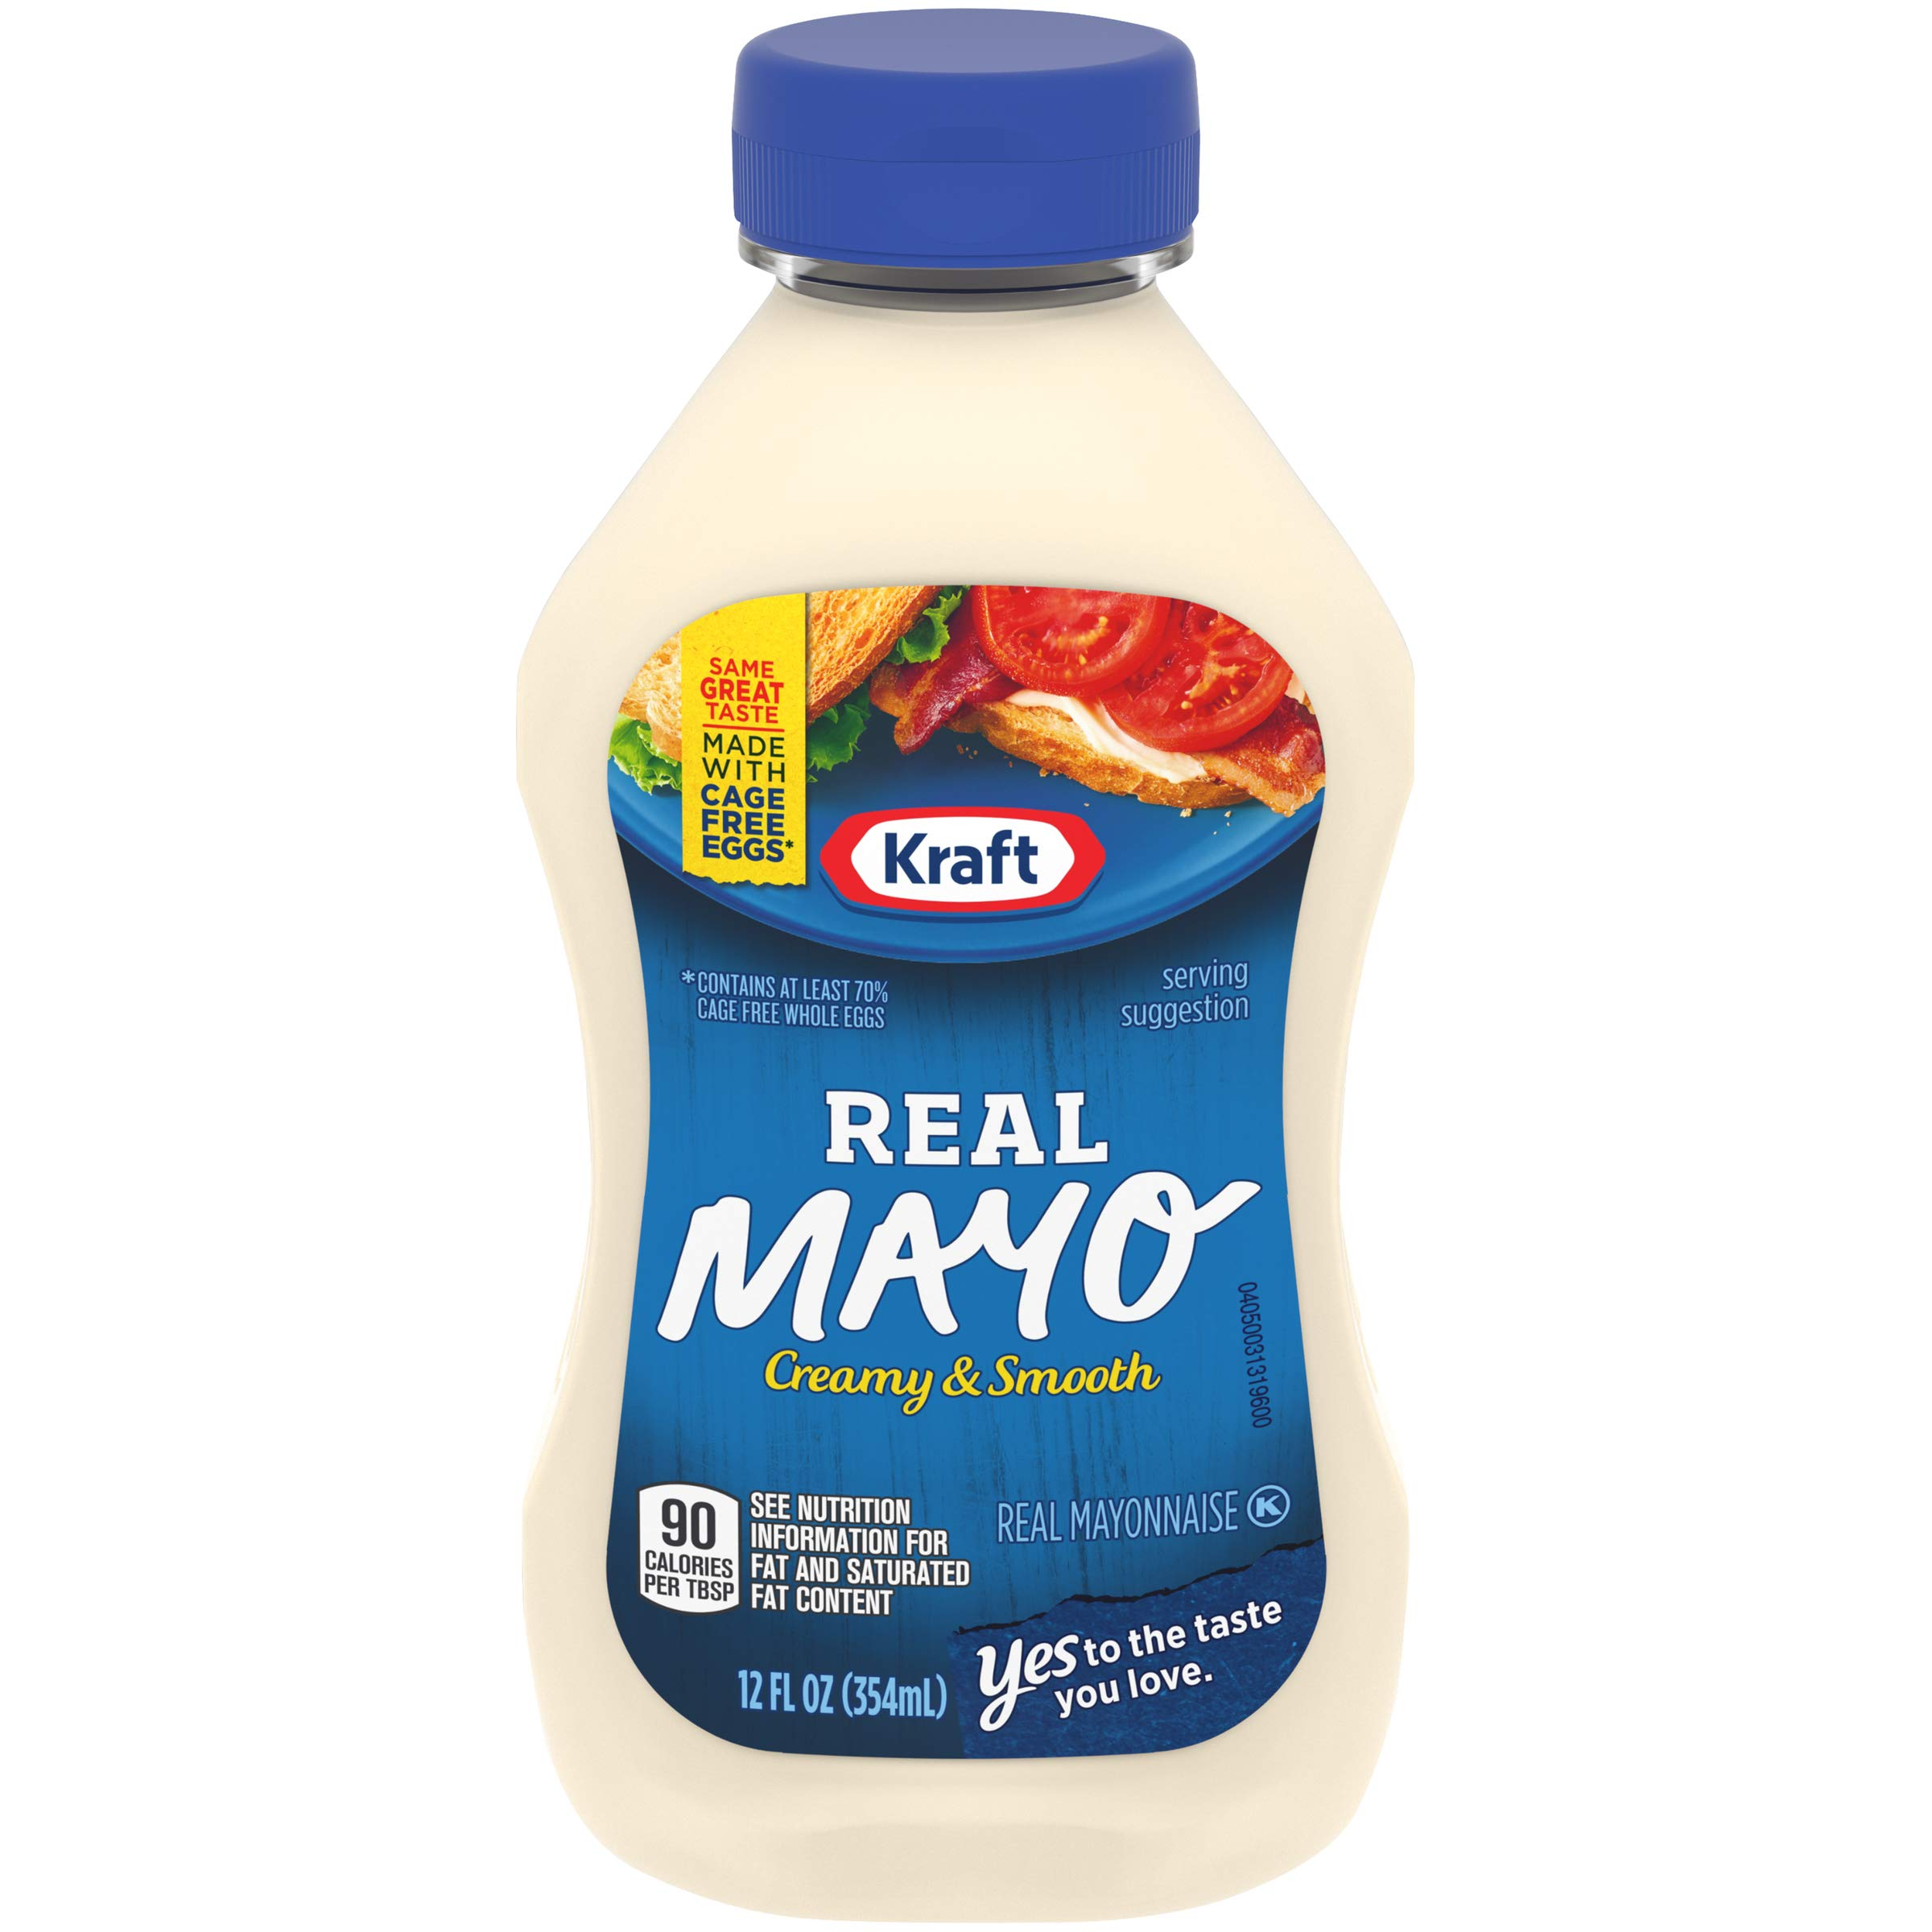 Kraft Mayo Real Mayonnaise, 12 fl oz Bottle